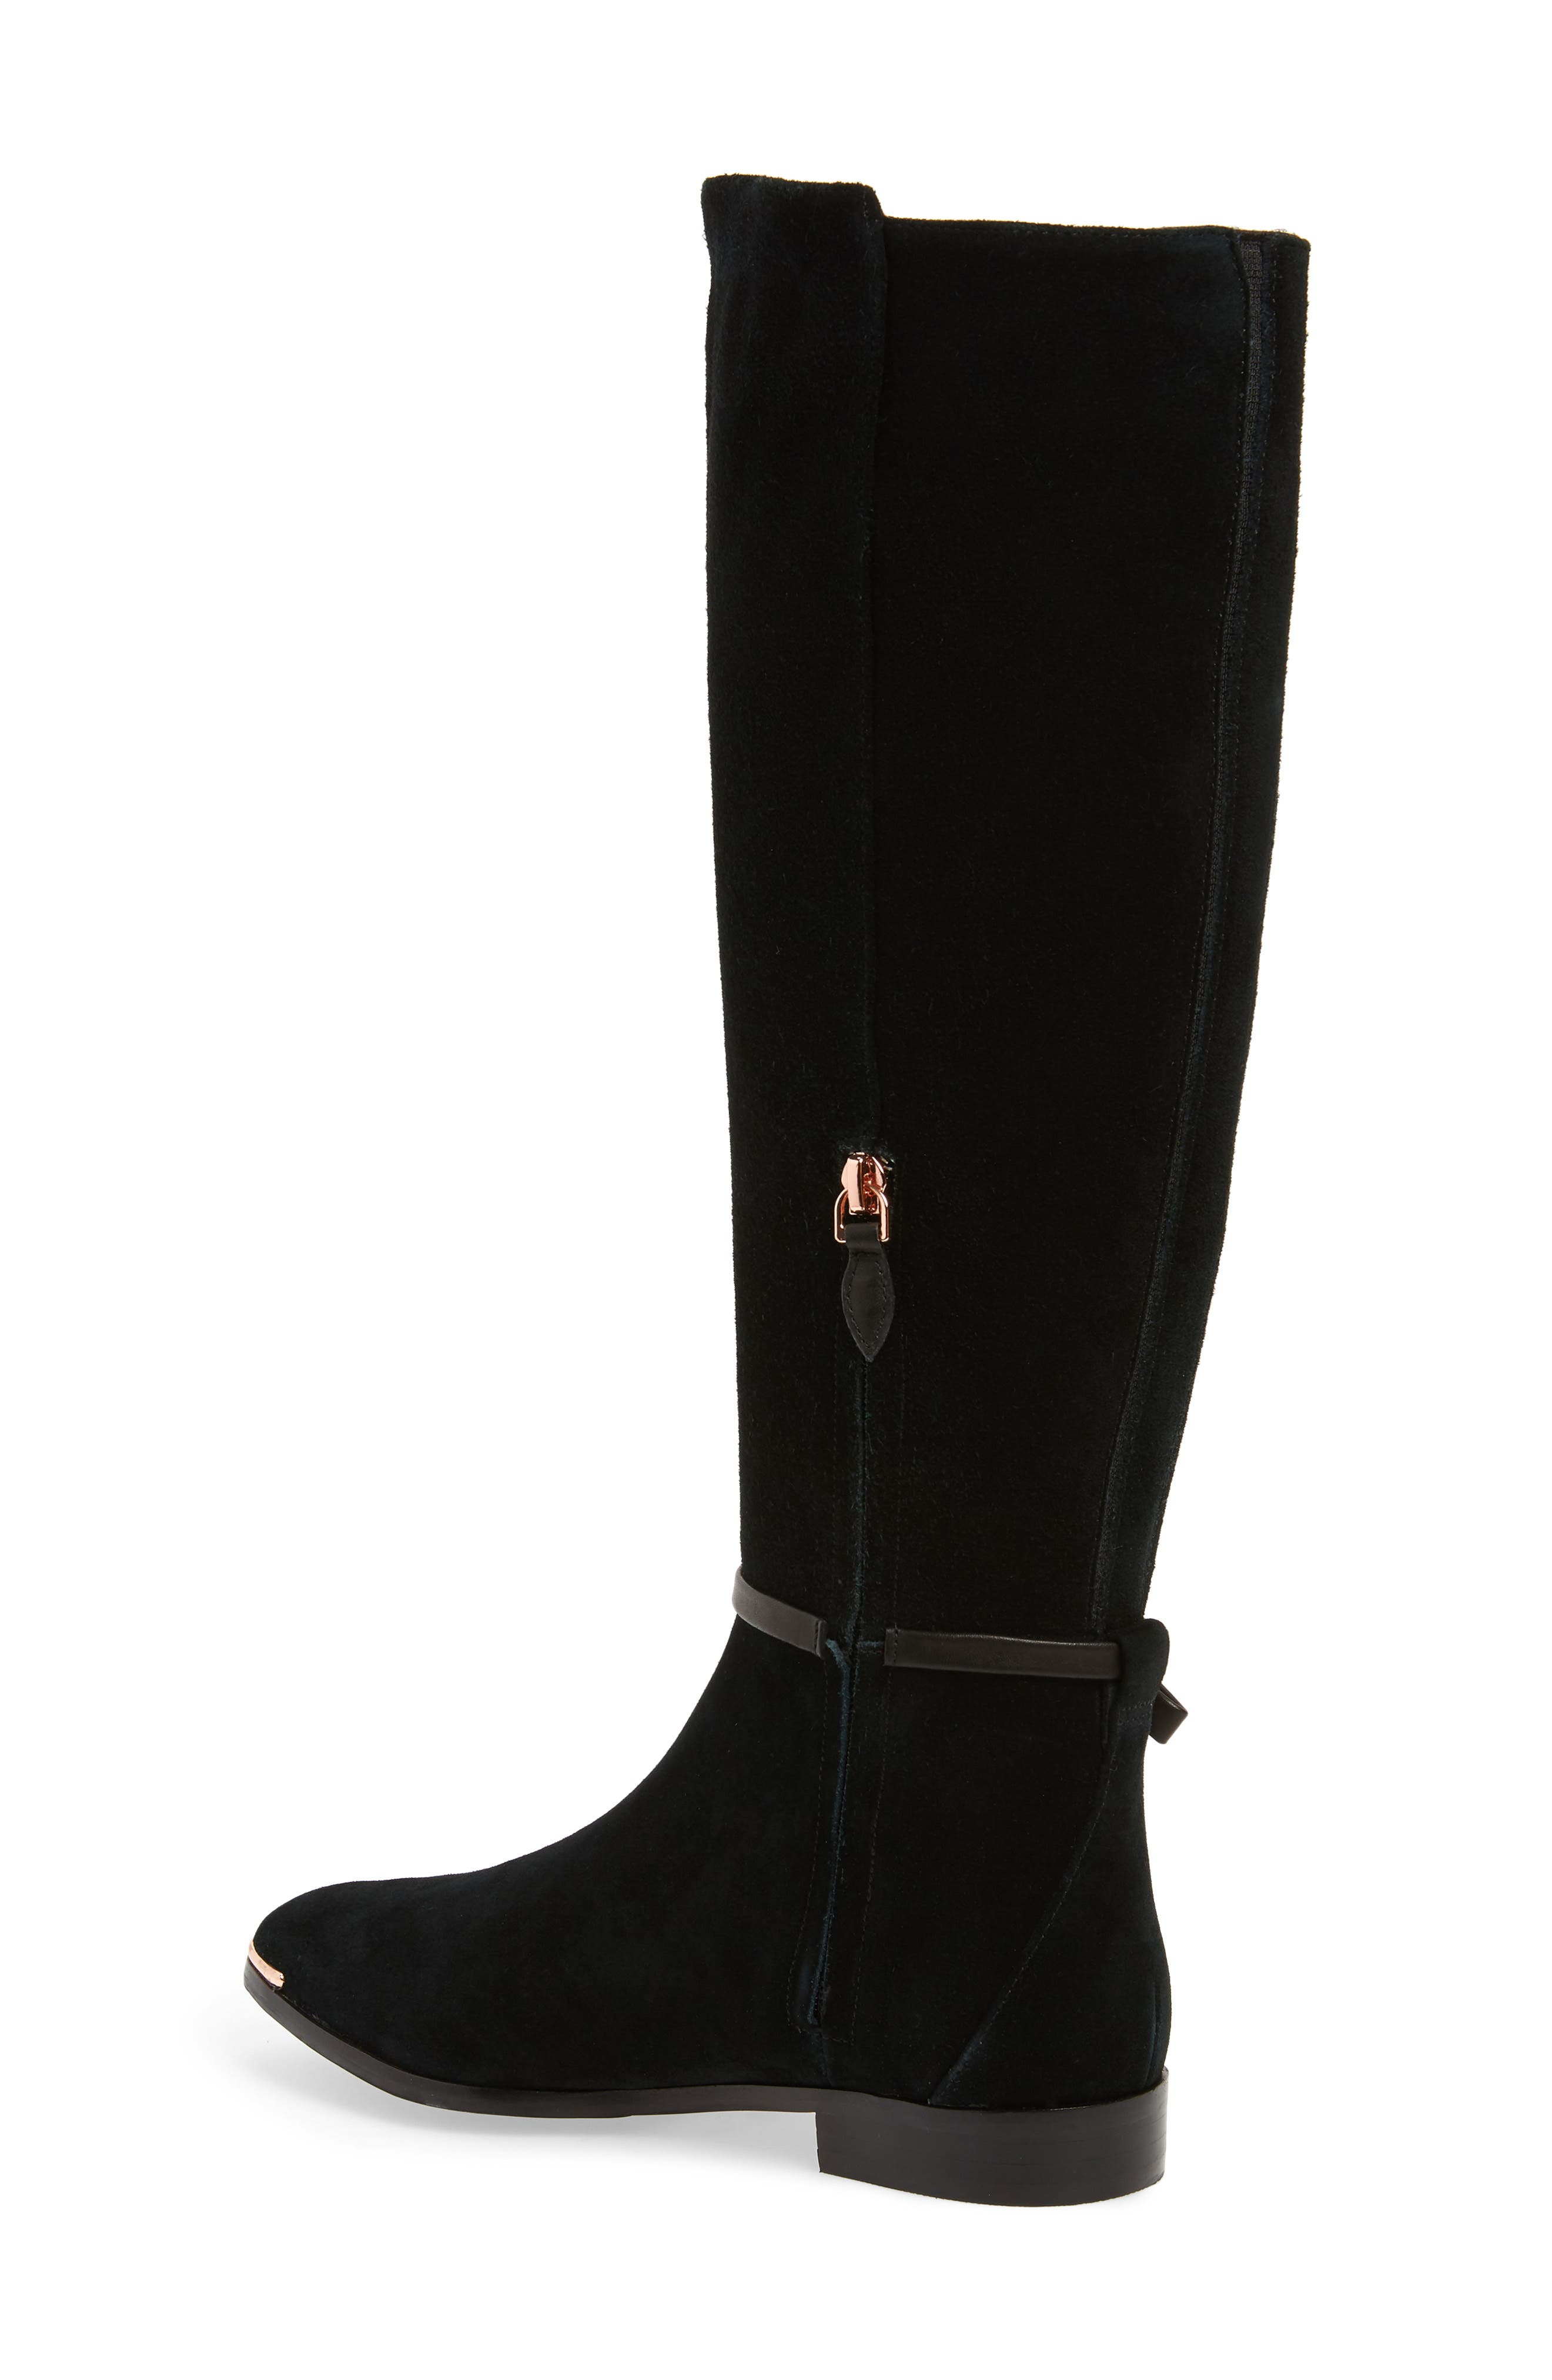 TED BAKER LONDON, Lykla Knee High Boot, Alternate thumbnail 2, color, BLACK SUEDE